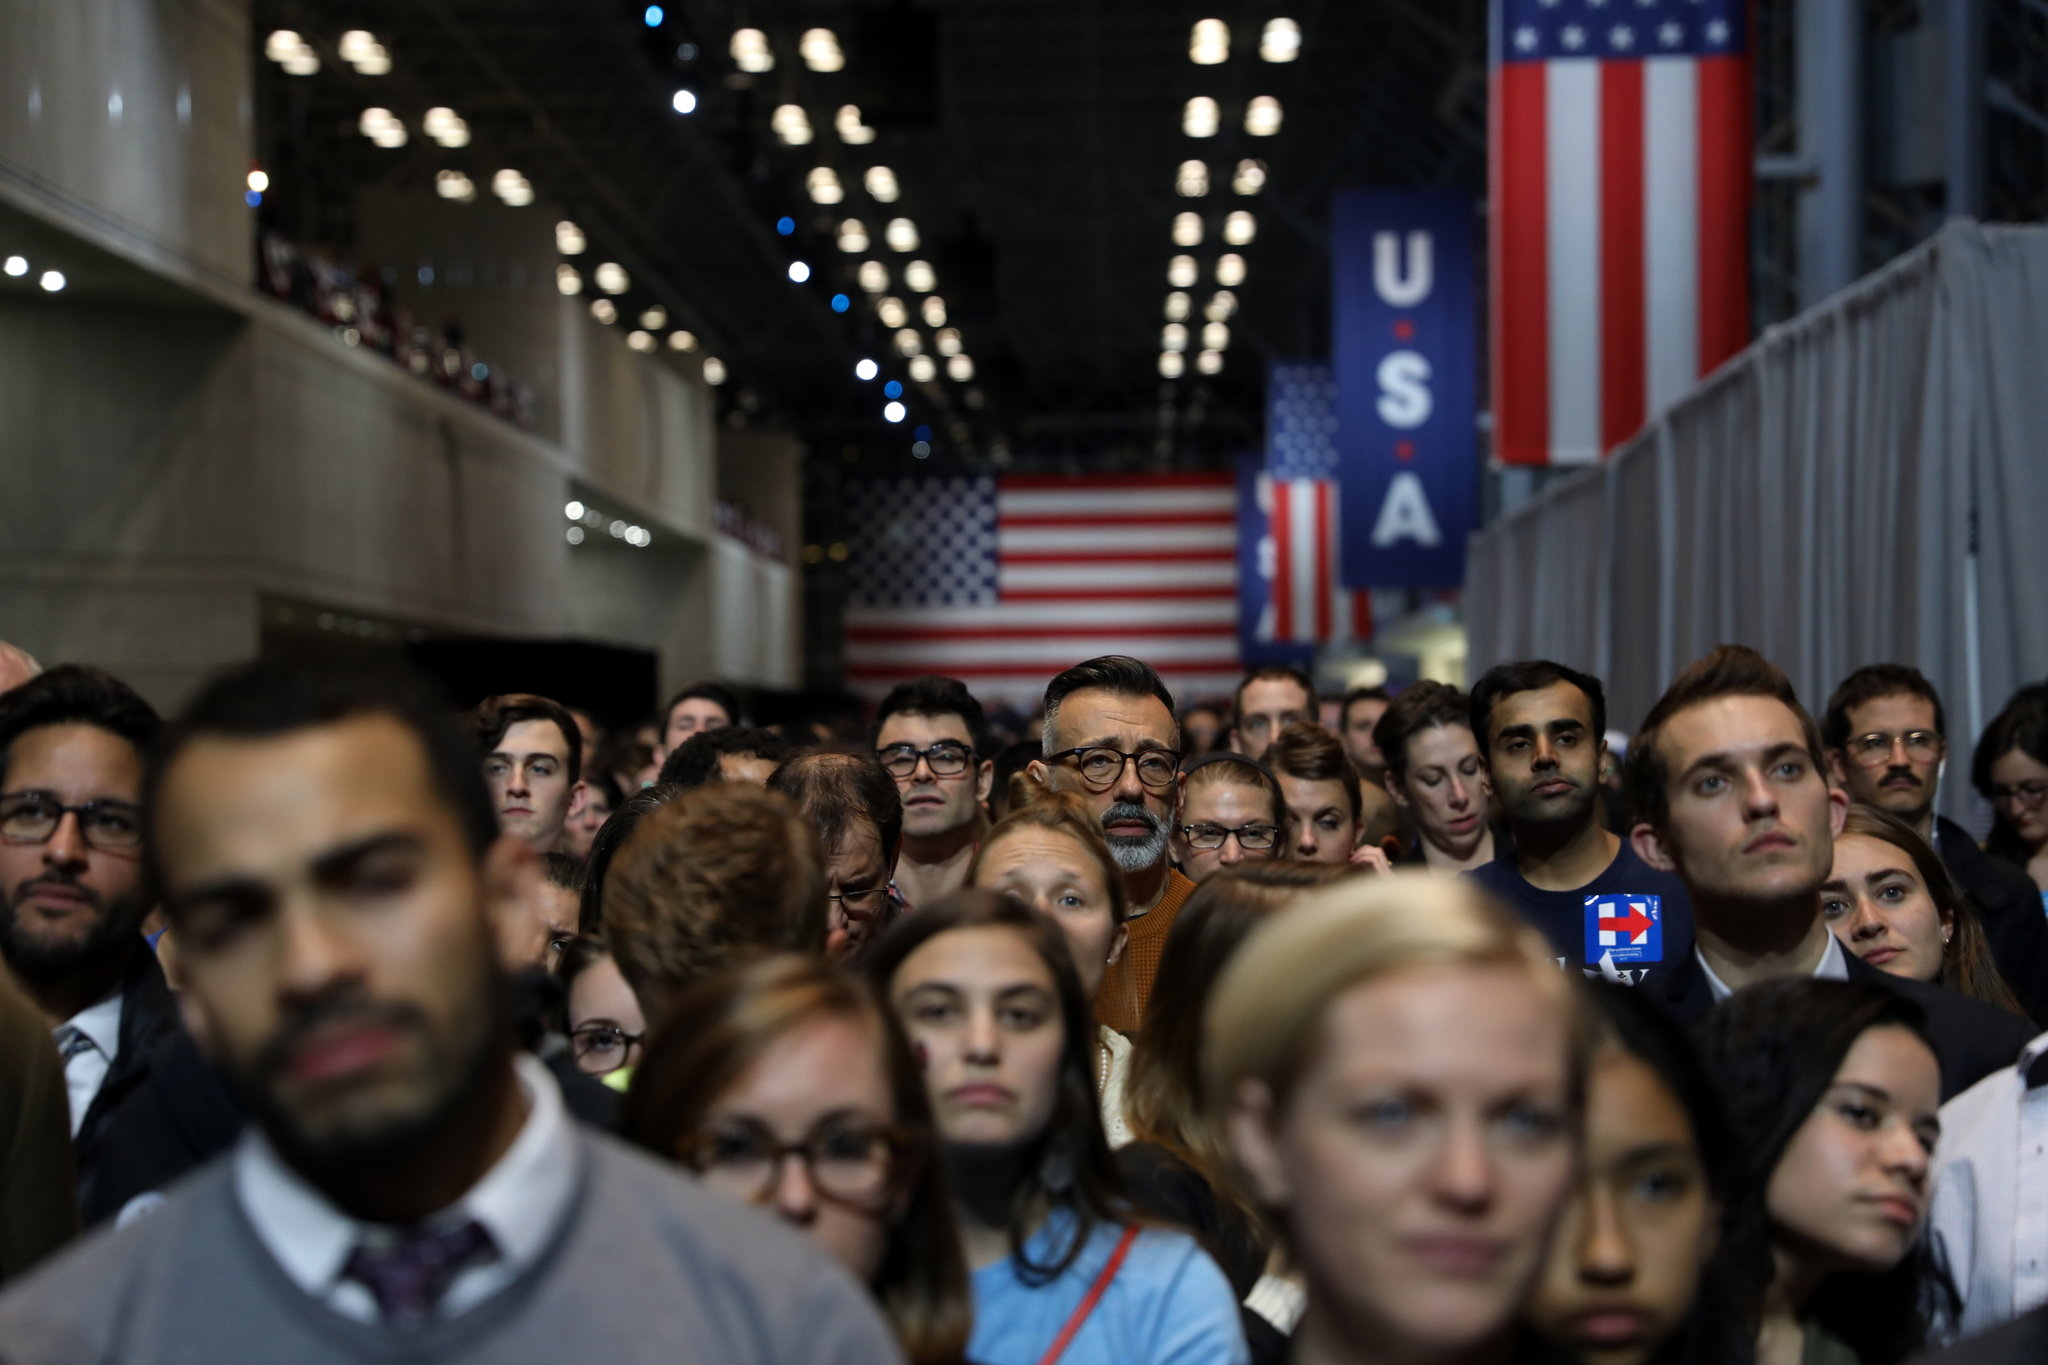 Hillary Clinton supporters at the Jacob K. Javits Convention Center in Manhattan watched as election returns were announced on Tuesday.  (Todd Heisler/The New York Times)